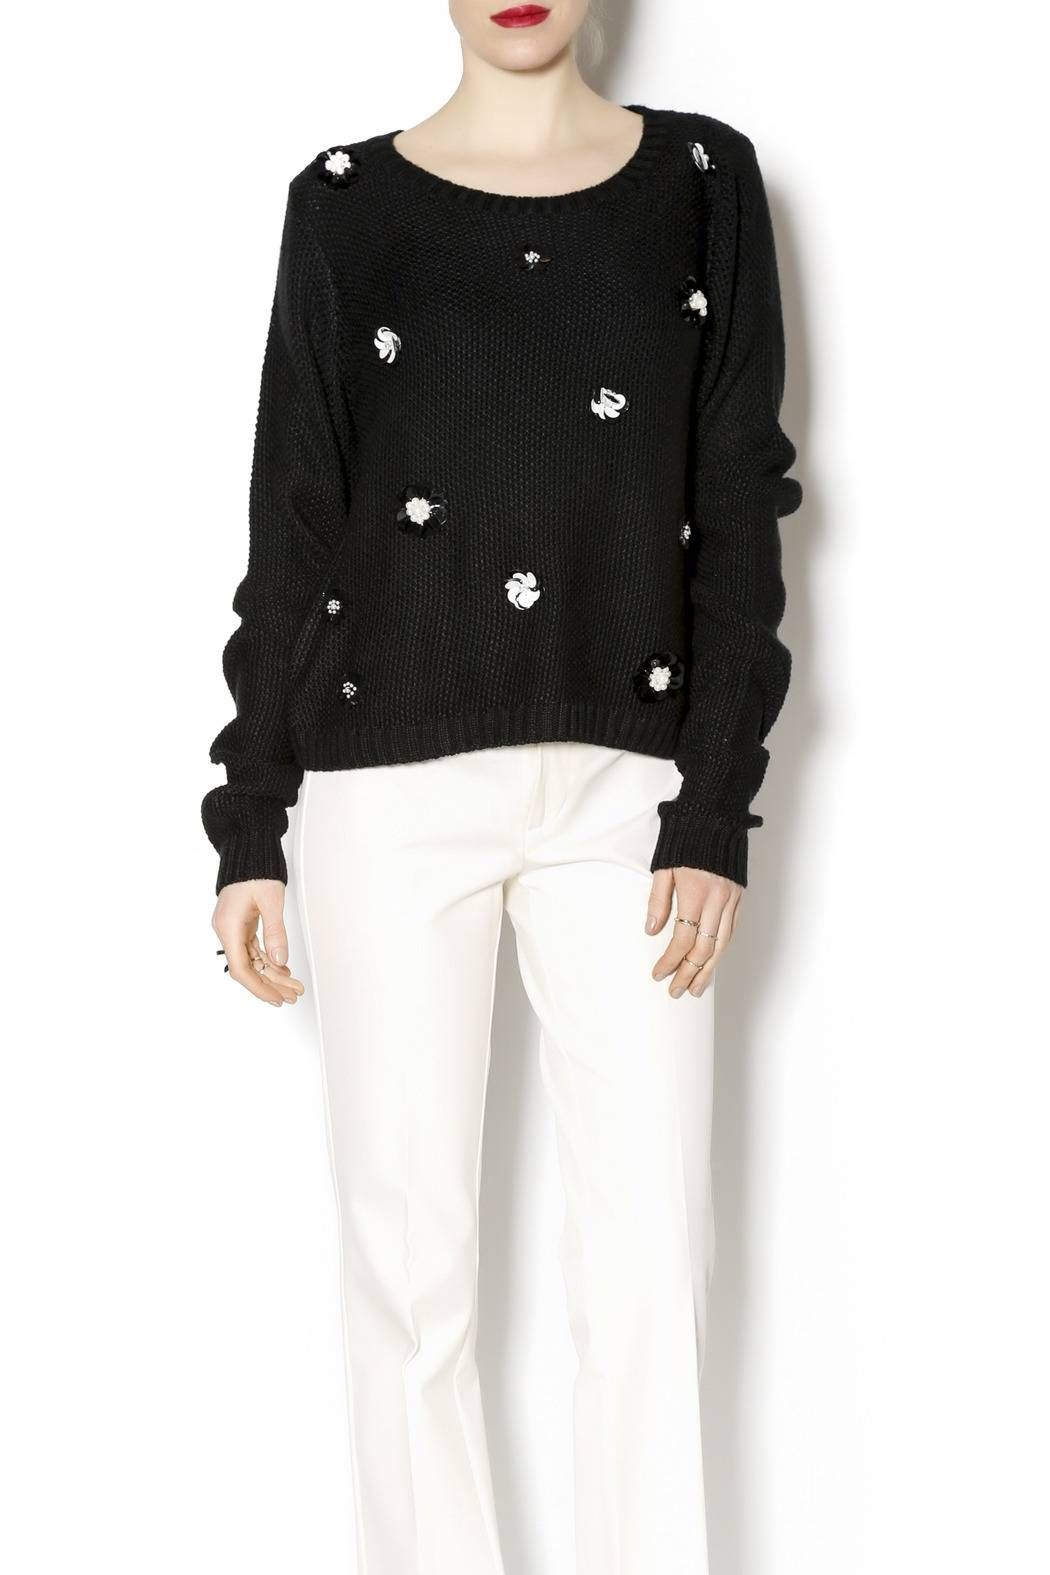 Knit black long sleeve sweater with delicate and feminine pearl and rhinestone flowers. Try this lovely little sweater over a red skater skirt with black pumps!   Black Flower Sweater by Endless Rose. Clothing - Tops - Long Sleeve Clothing - Sweaters - Crew & Scoop Neck Houston, Texas